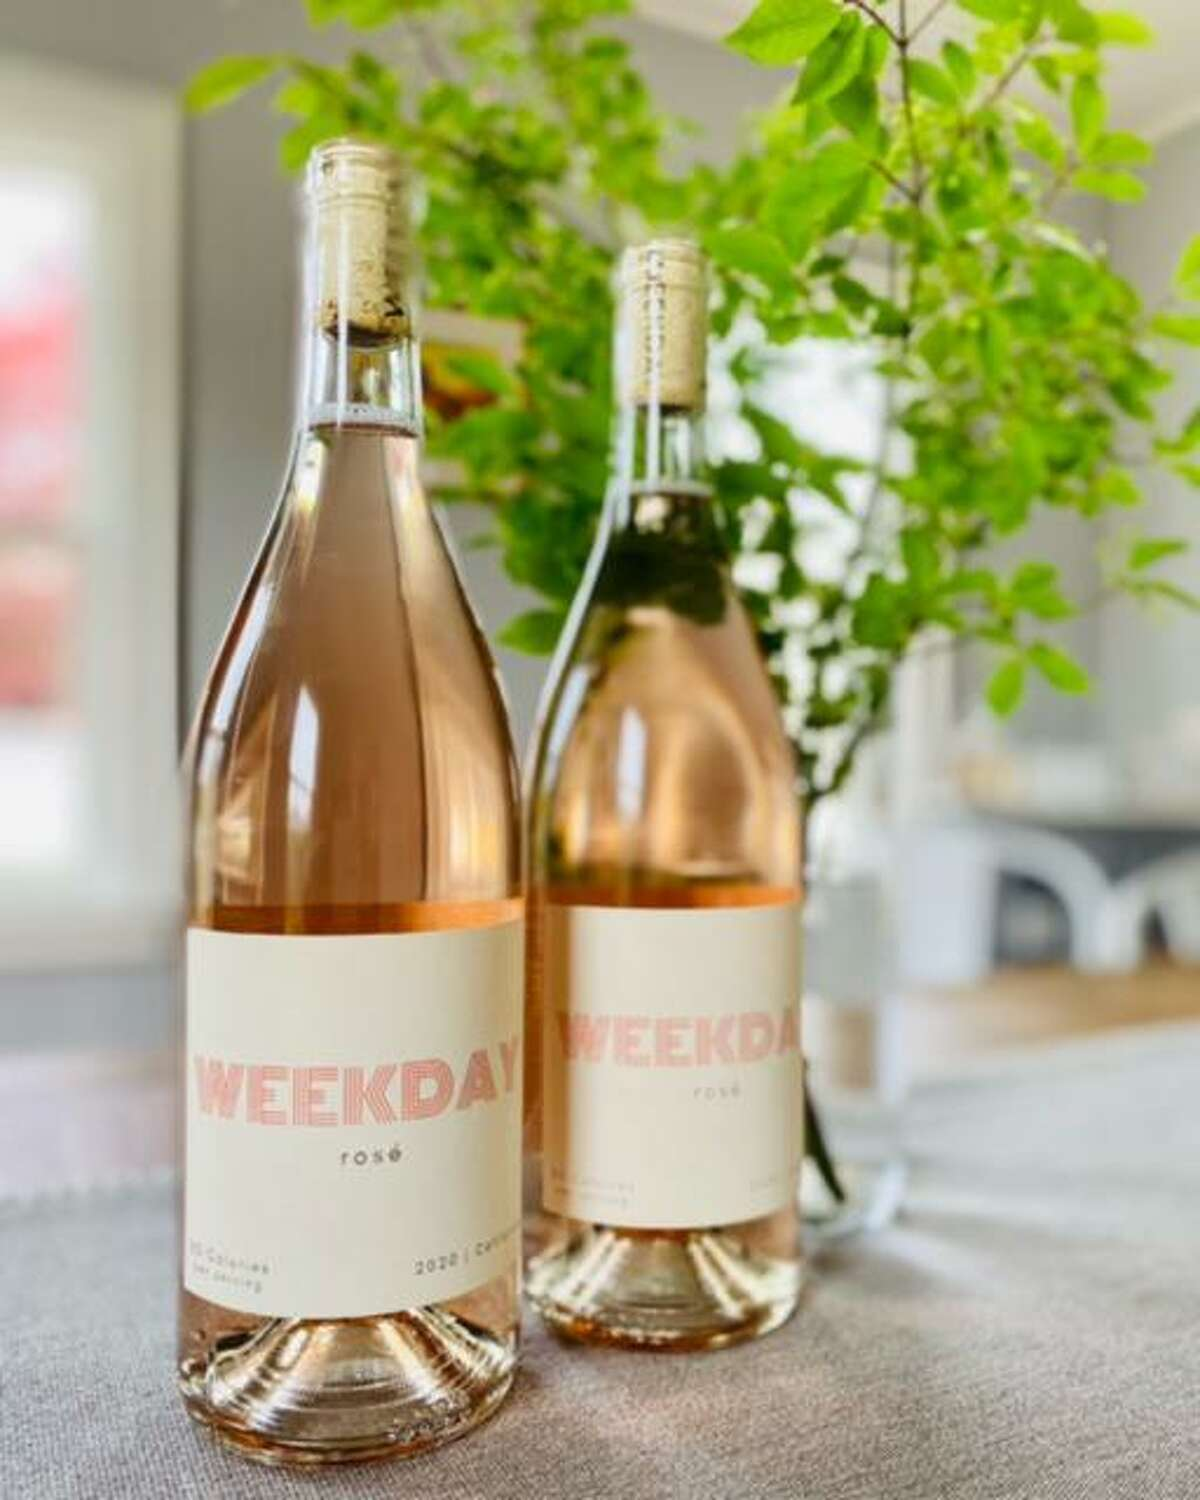 Ryan and Justine Whalen of Branford launched their company Weekday in May. Their company sells low alcohol wine.